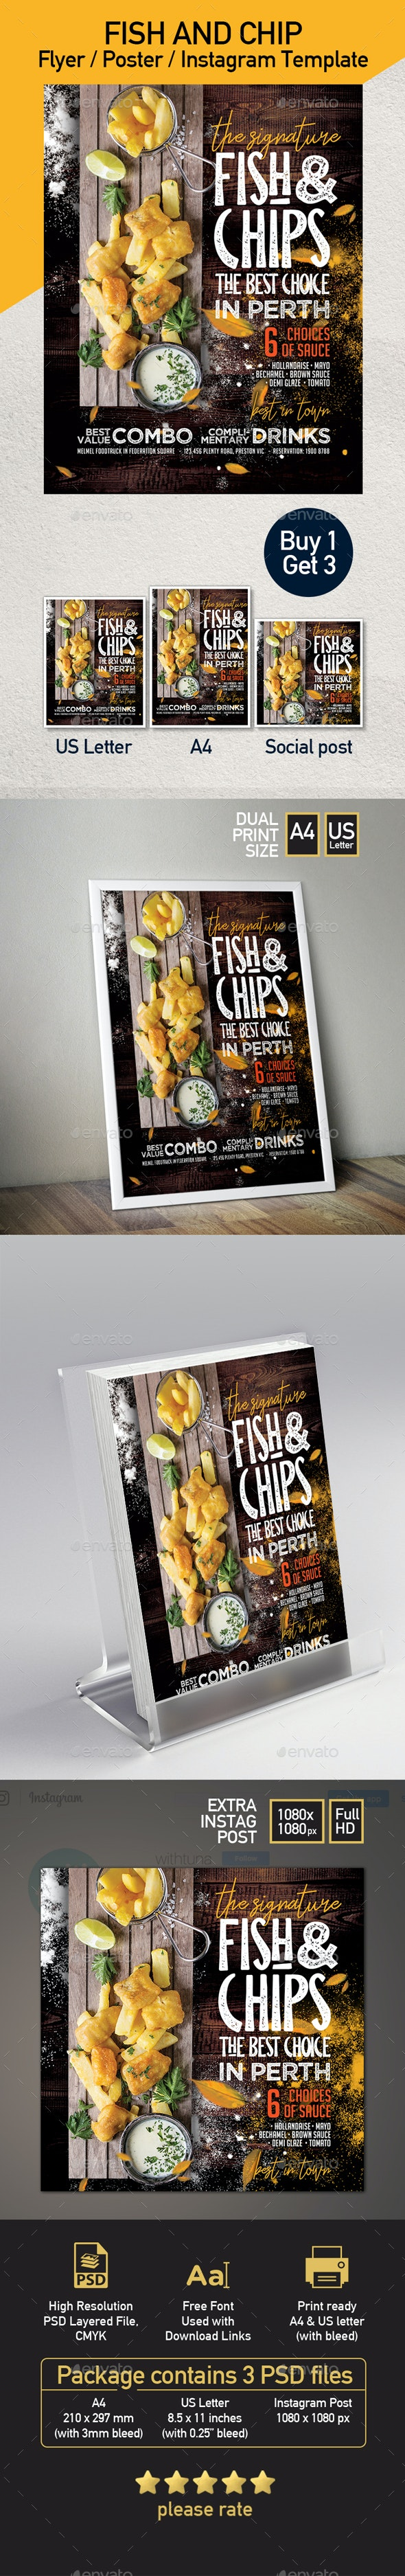 Fish and Chips Food Truck or Restaurant Flyer - Restaurant Flyers